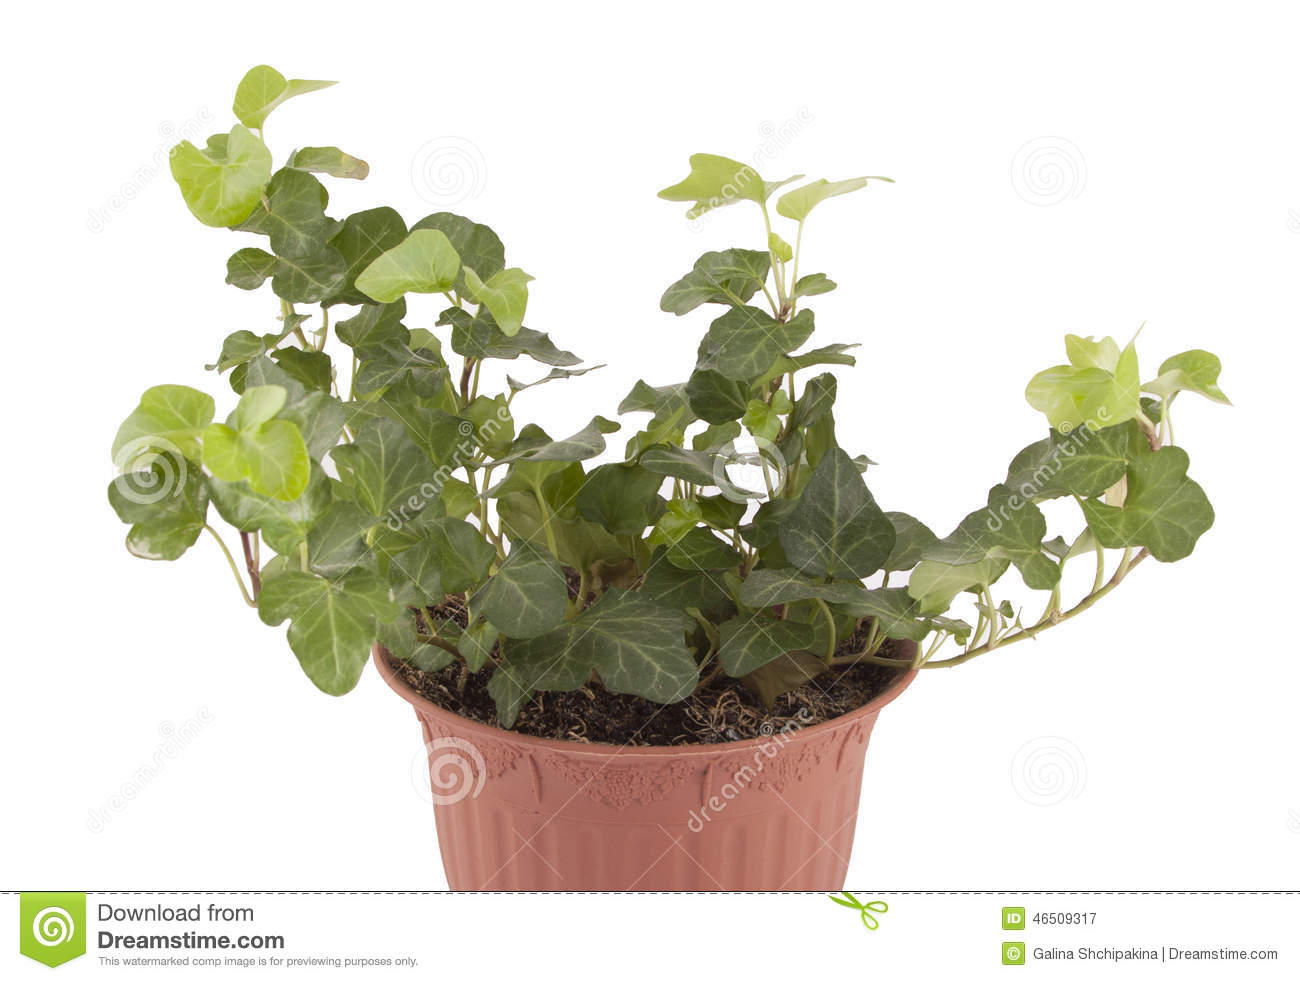 Lierre de plante d 39 int rieur photo stock image 46509317 - Moucherons plante d interieur ...